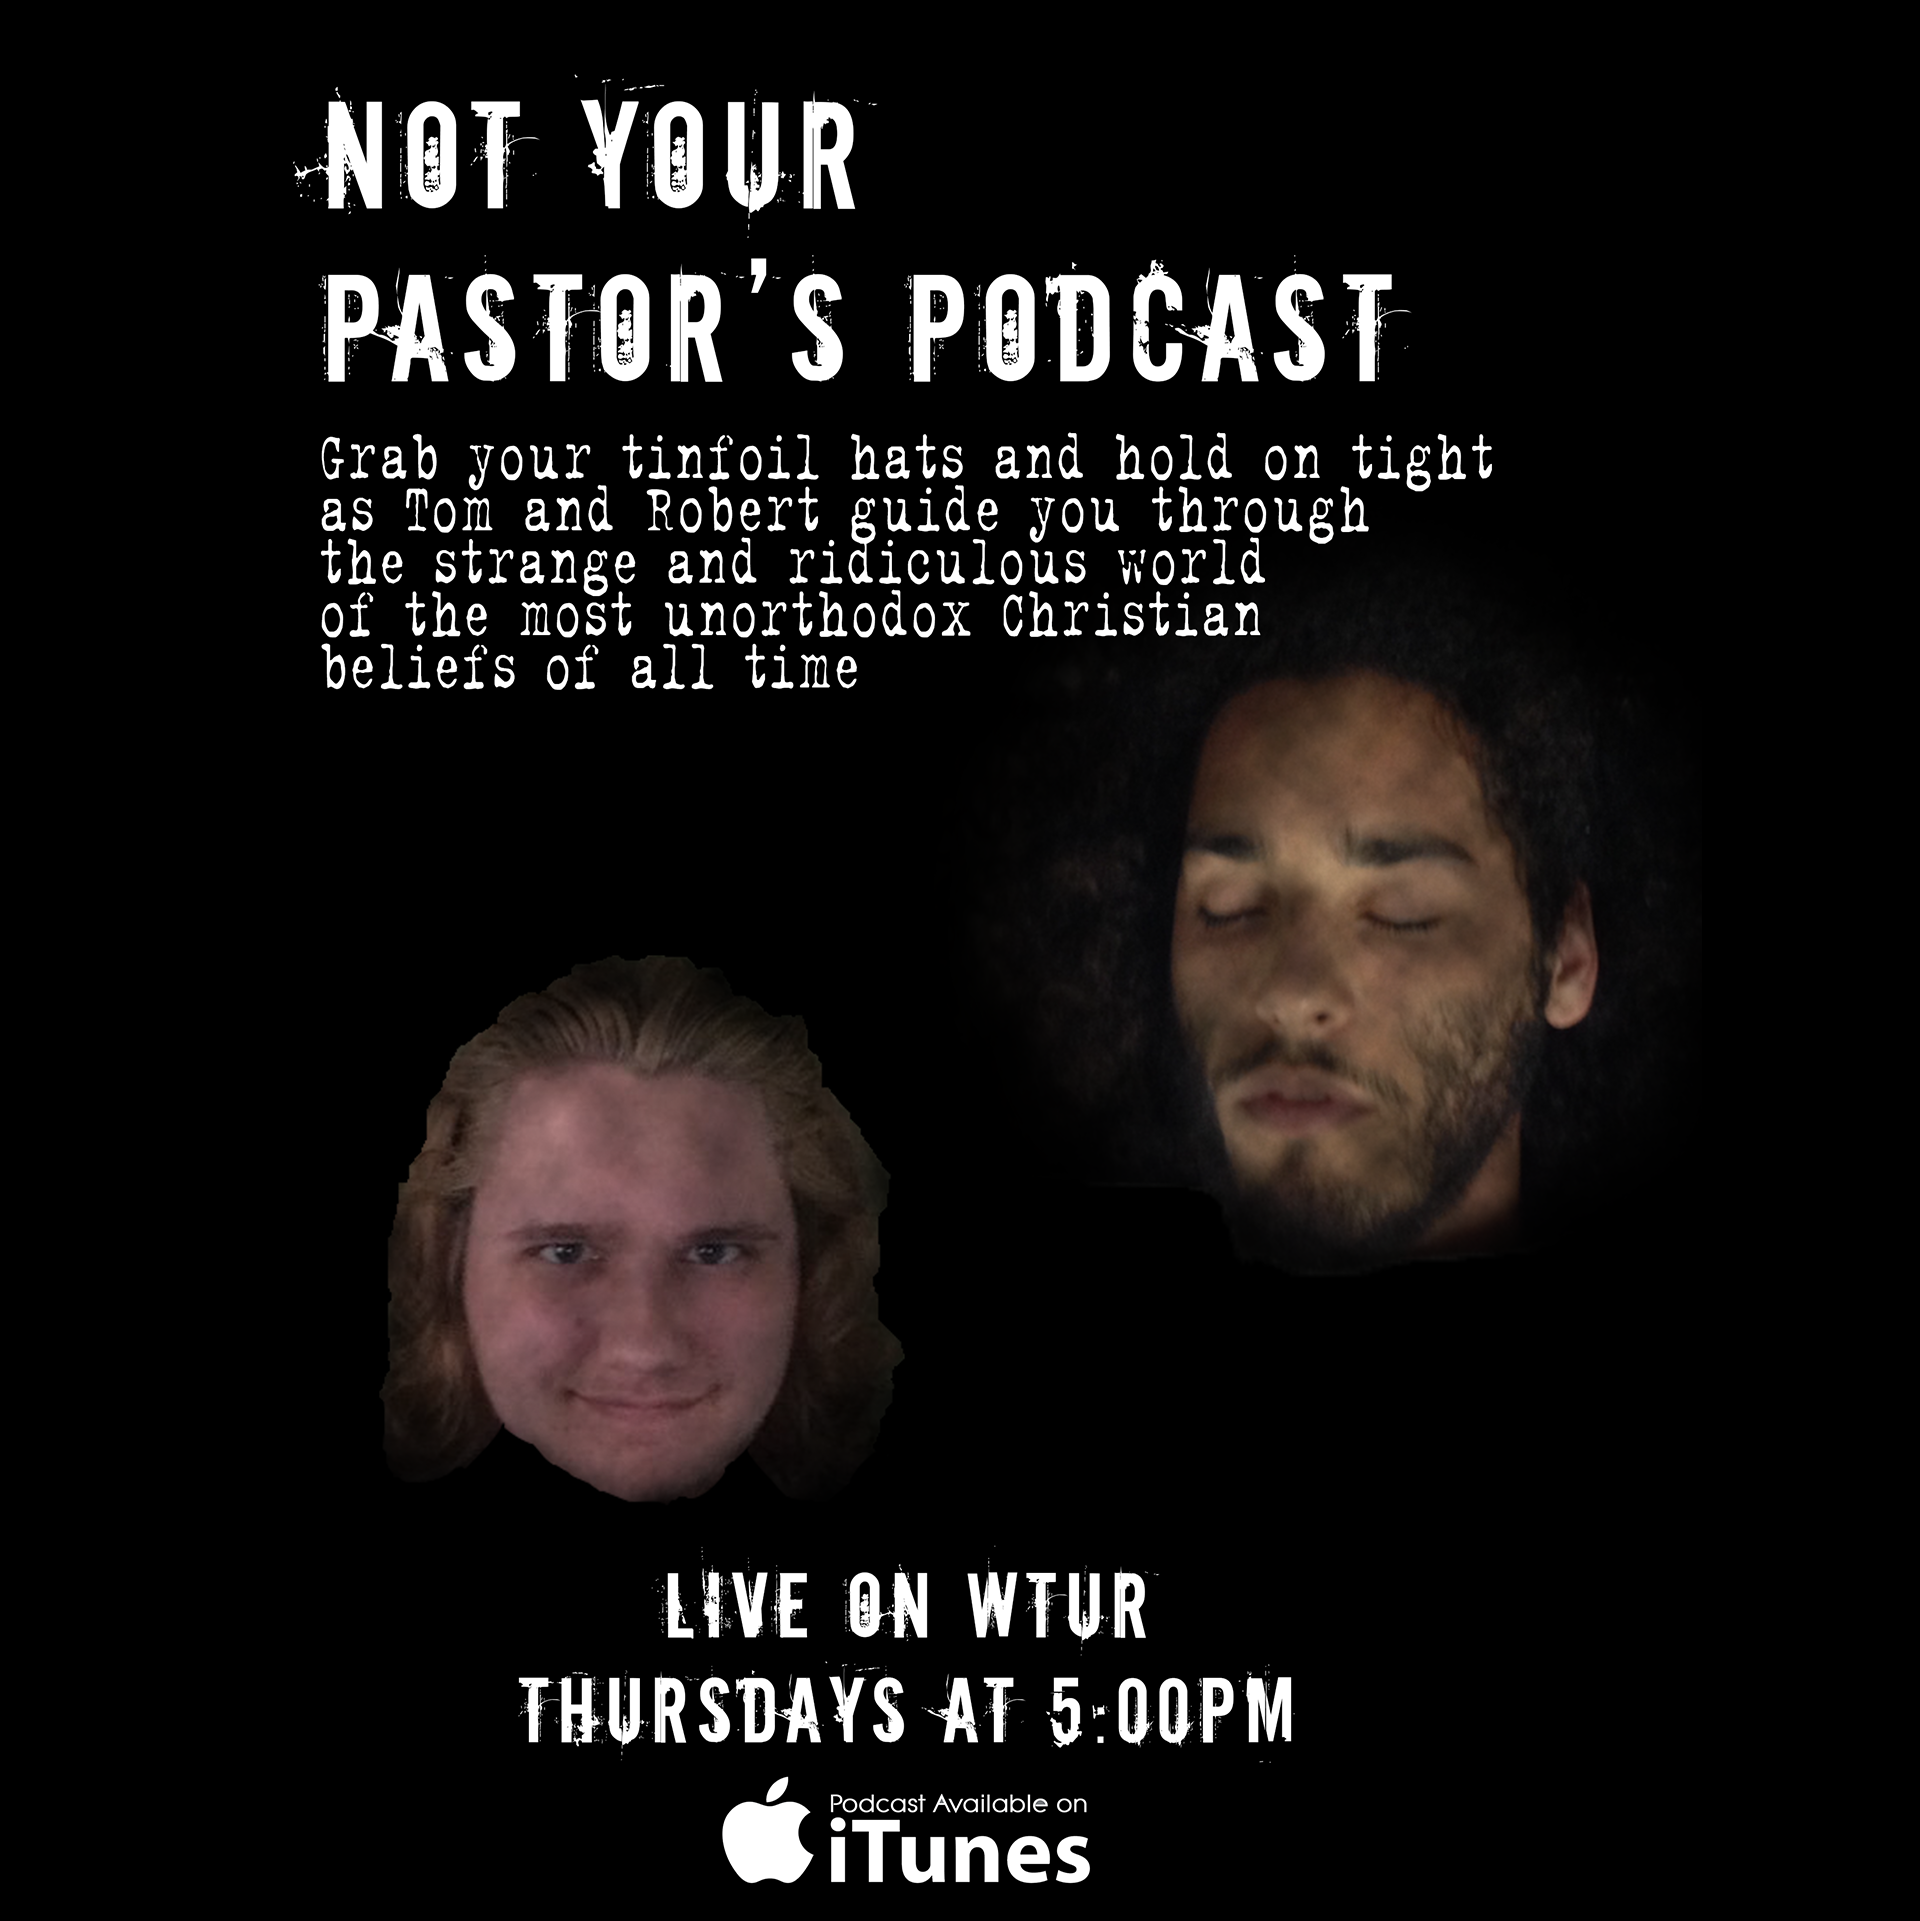 Not Your Pastor's Podcast Poster